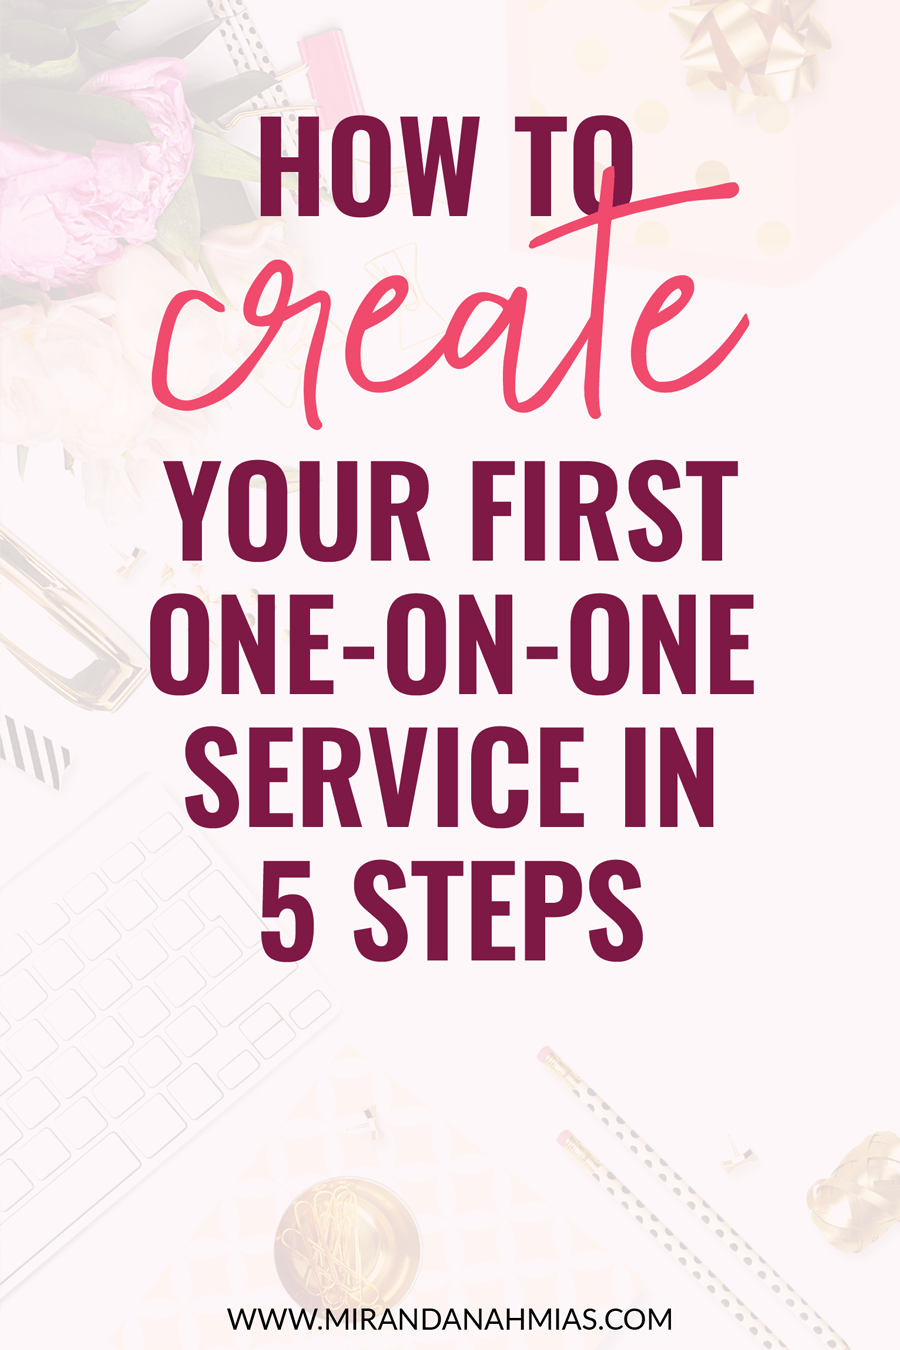 How to create your first one on one service in 5 steps | Miranda Nahmias & Co. - Score clients and grow your business with systematic marketing